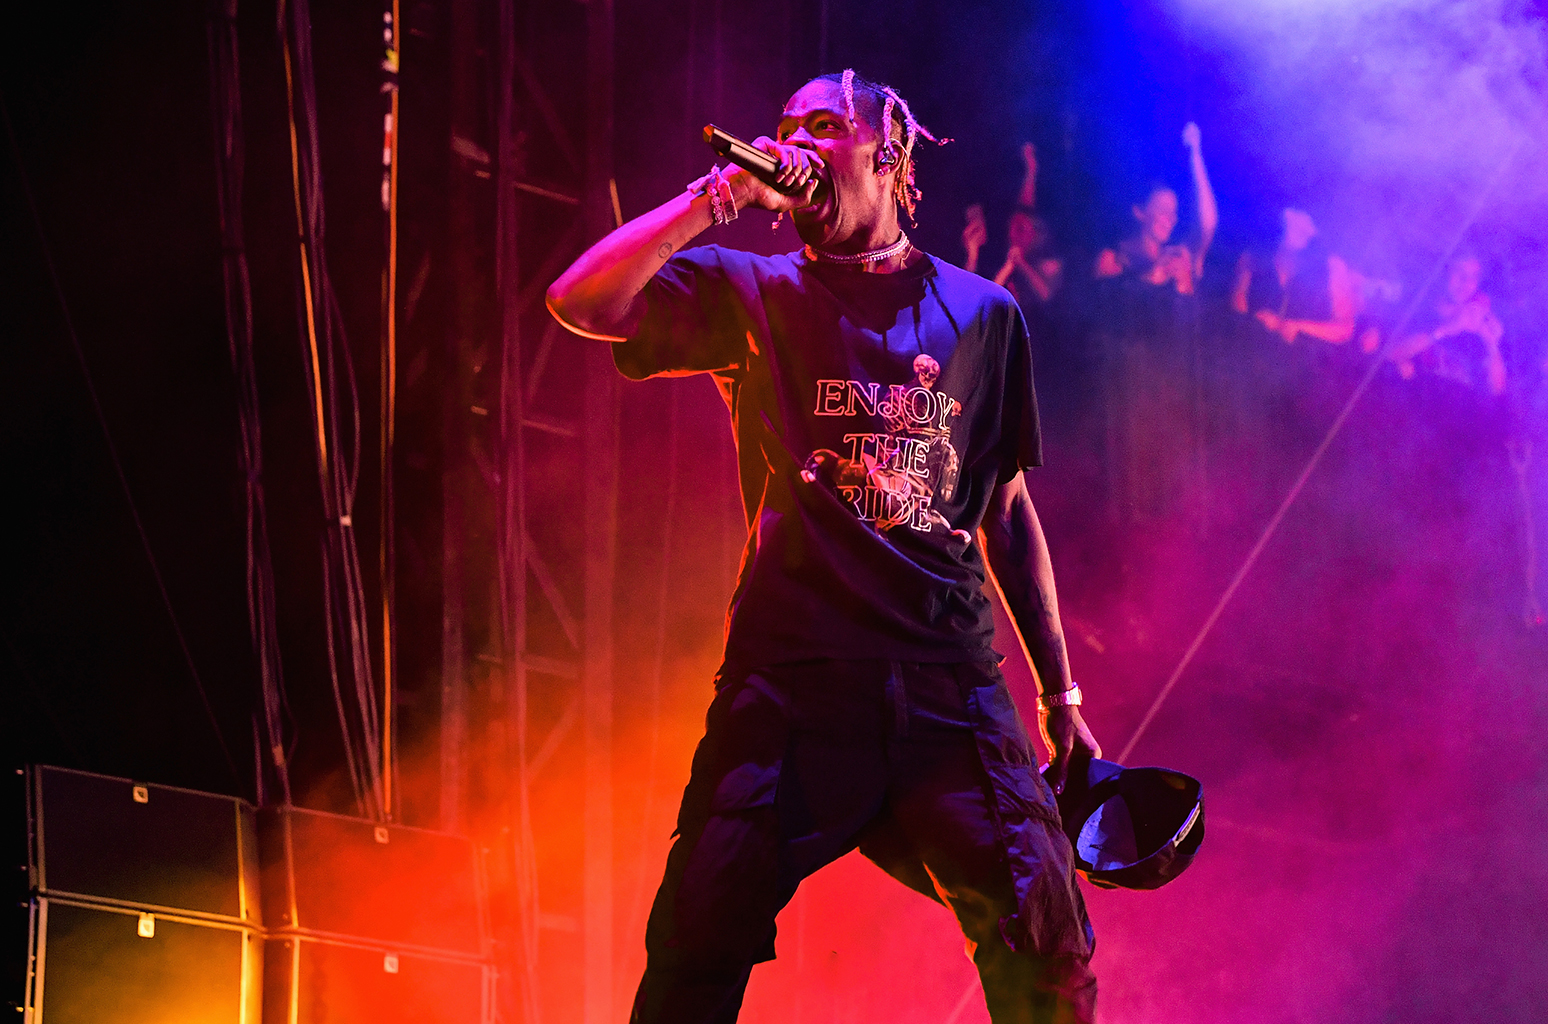 a9152a1d64ac All fans of Travis Scott have been trooping to get their tickets online, as  Travis has promised to give a never seen before experience to everyone. You  will ...